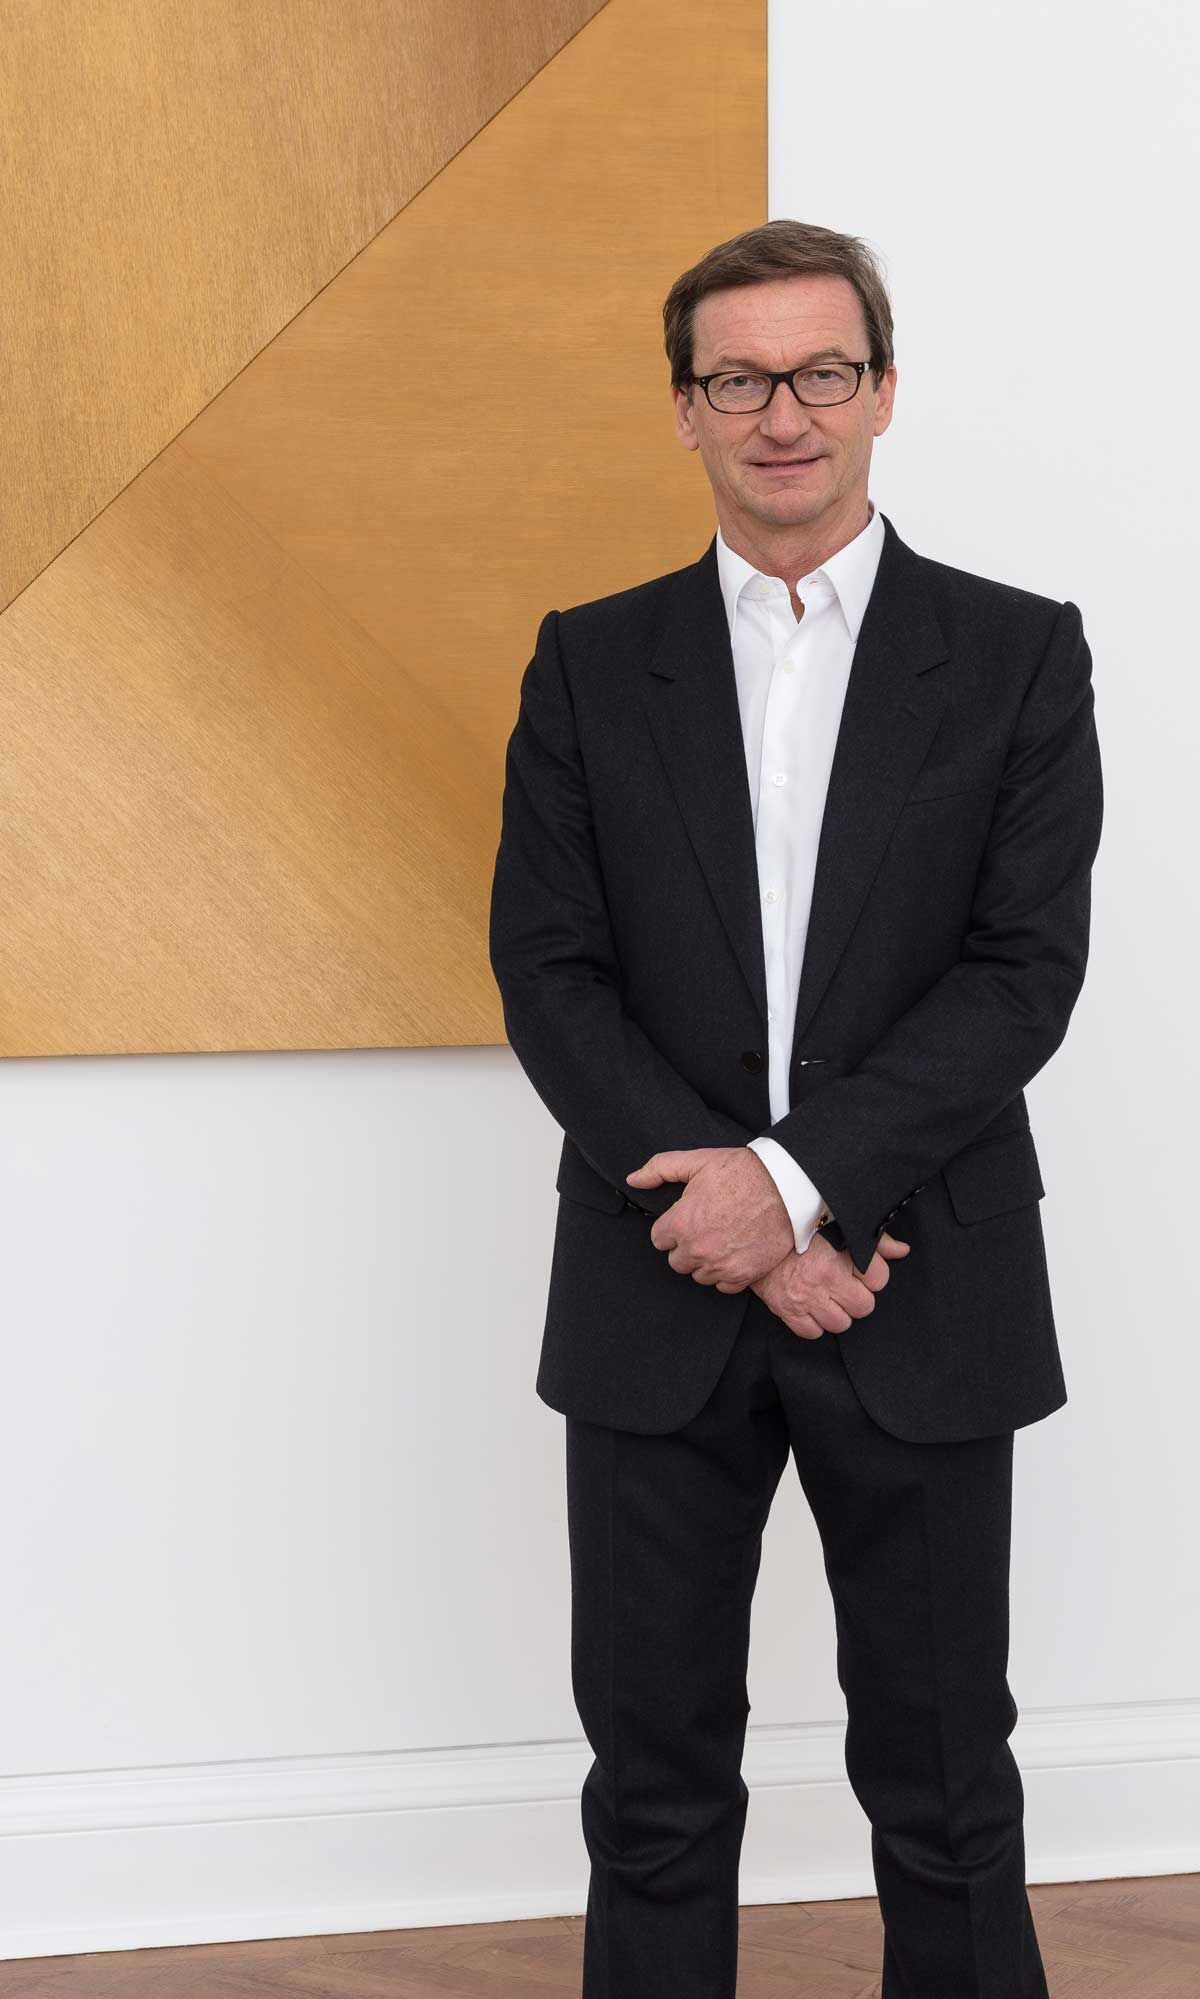 Portrait of Thaddaeus Ropac by Mark Blower. Courtesy of Galerie Thaddaeus Ropac.